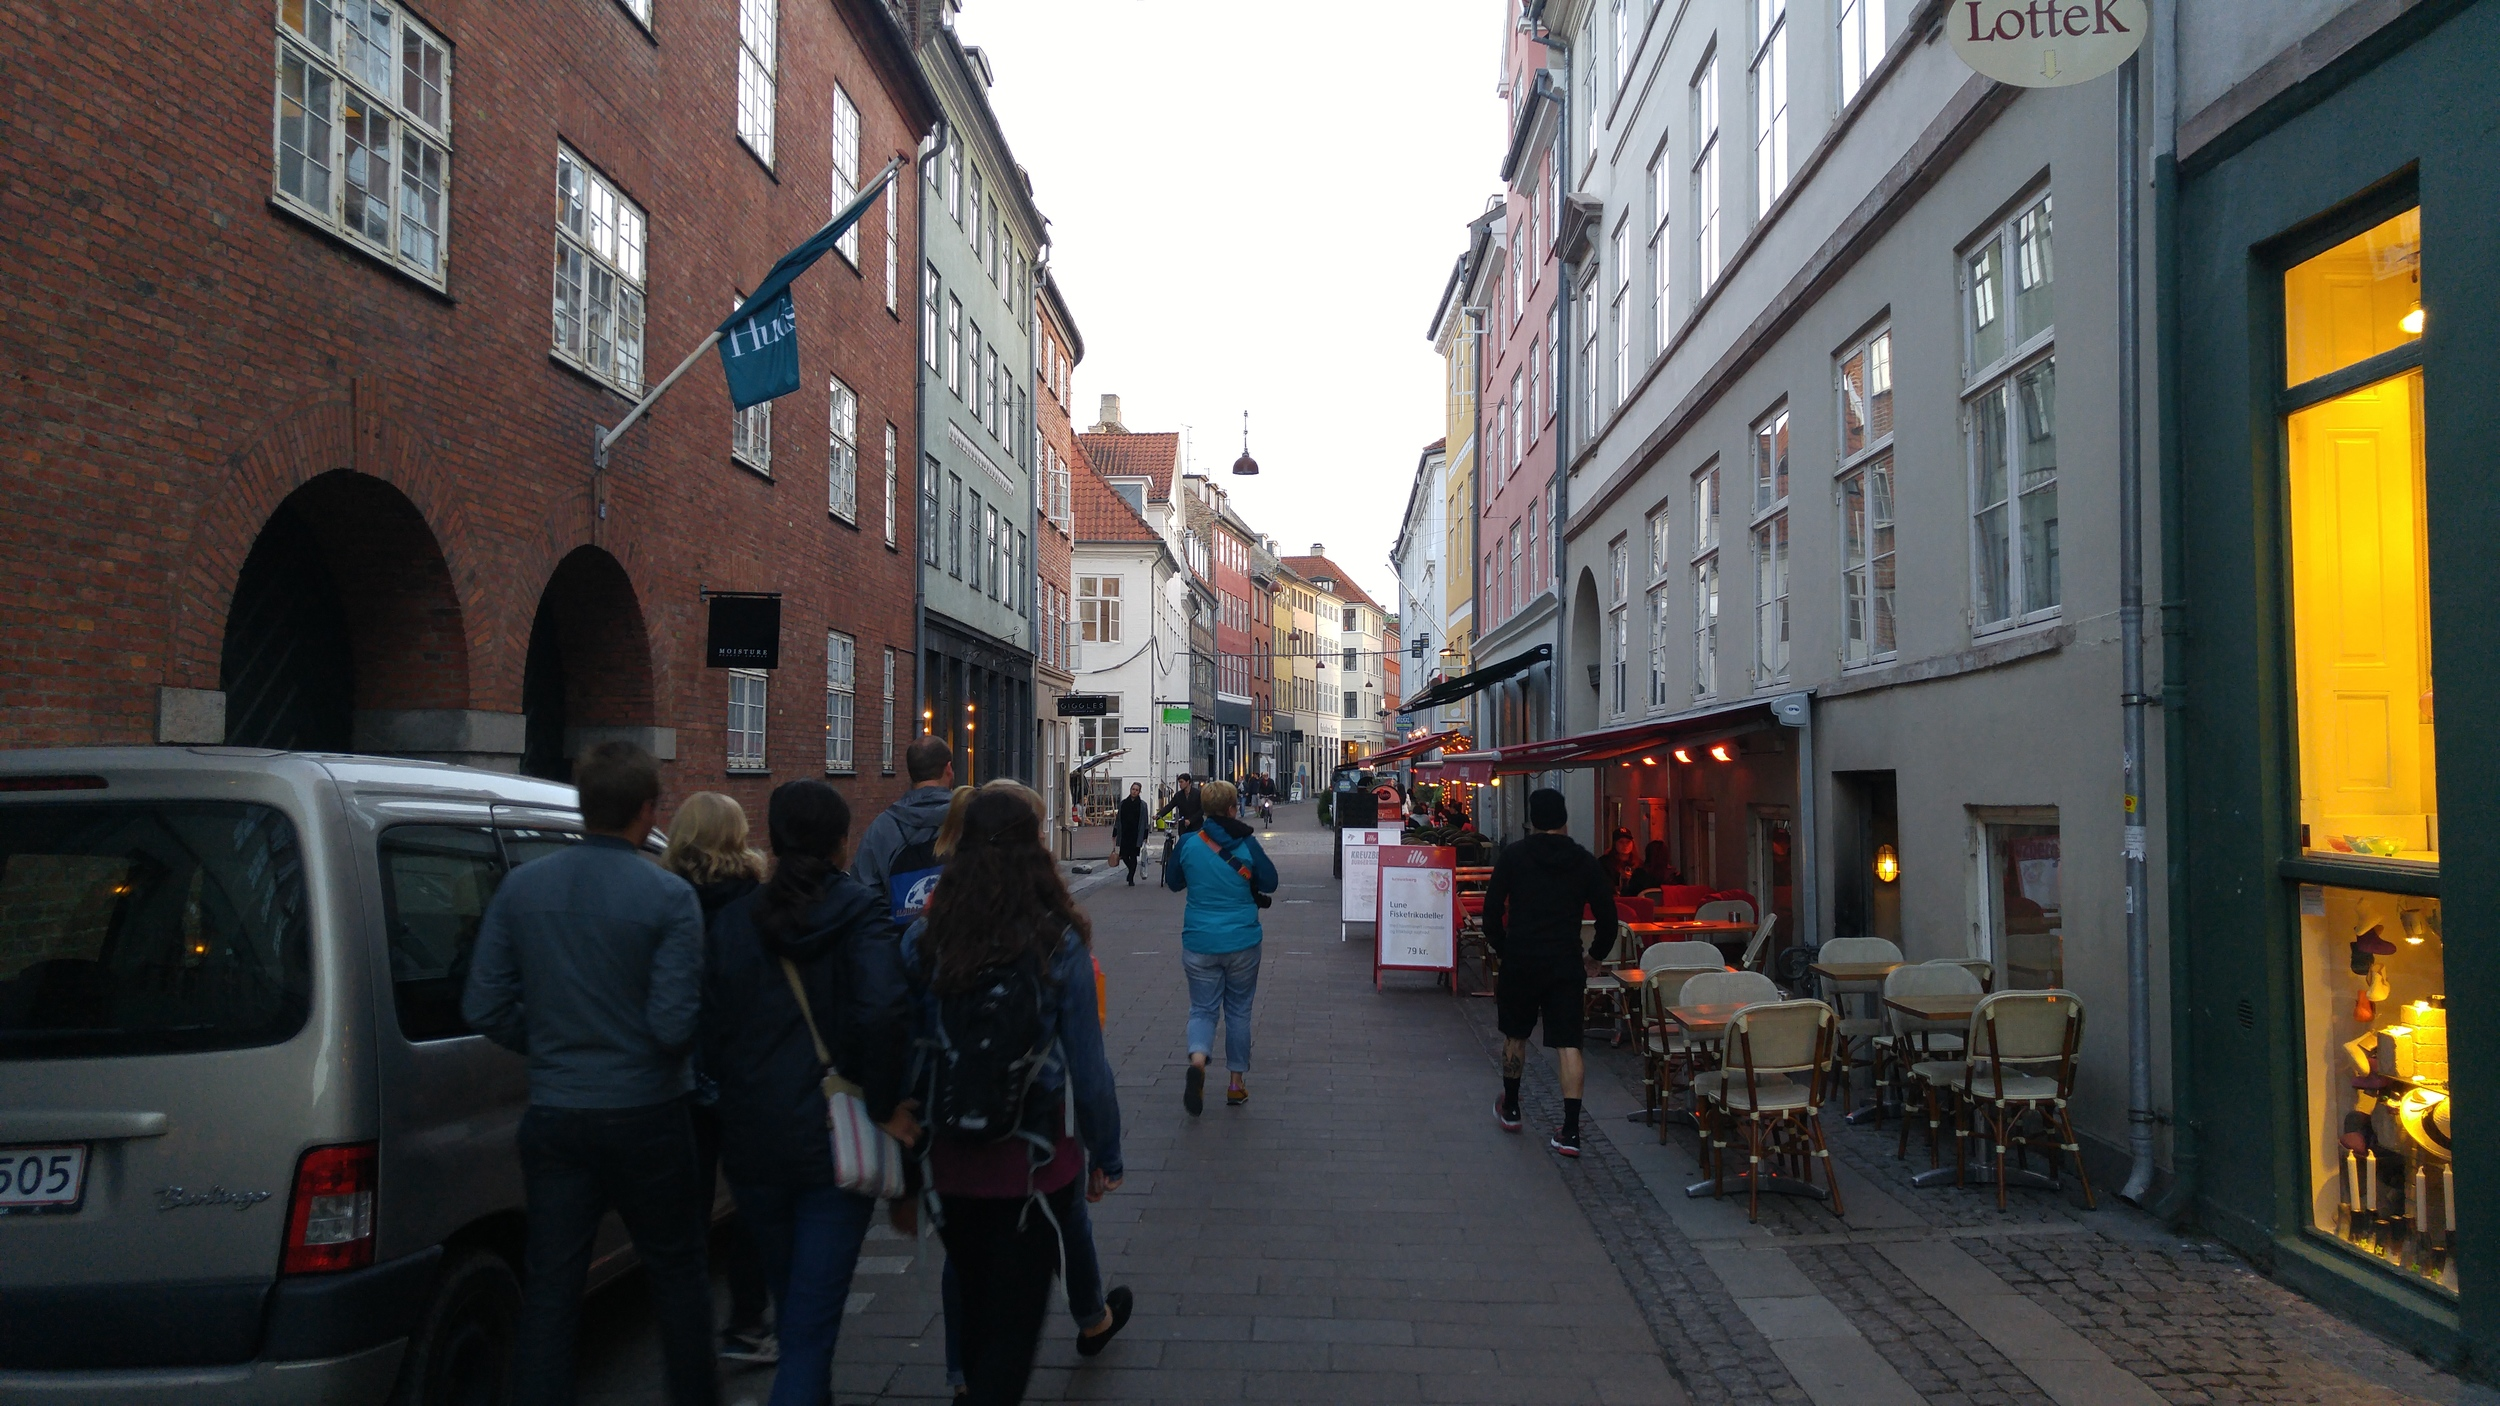 Strædet is a multi-use passage where there is something new around every bend.